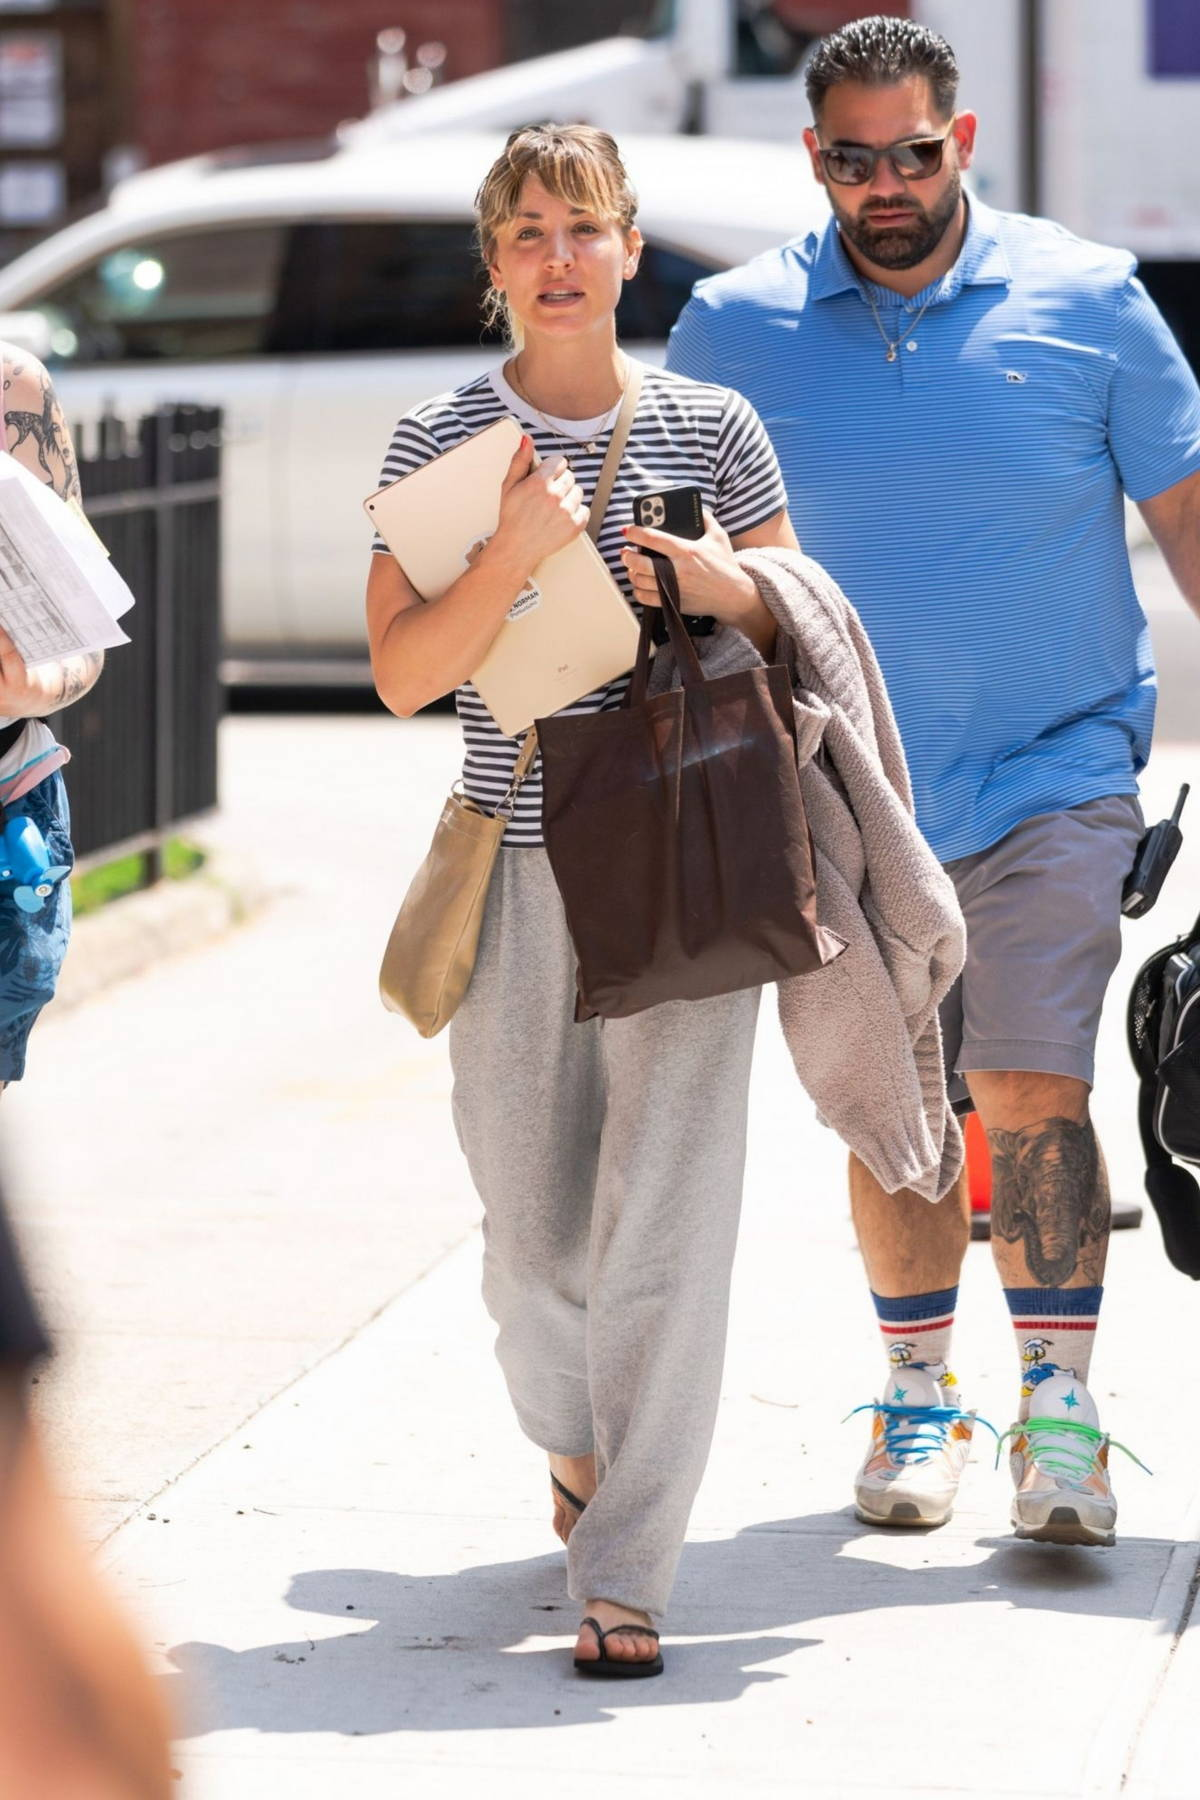 Kaley Cuoco spotted in a striped t-shirt and sweatpants while on the set 'Meet Cute' in the Brooklyn borough of New York City